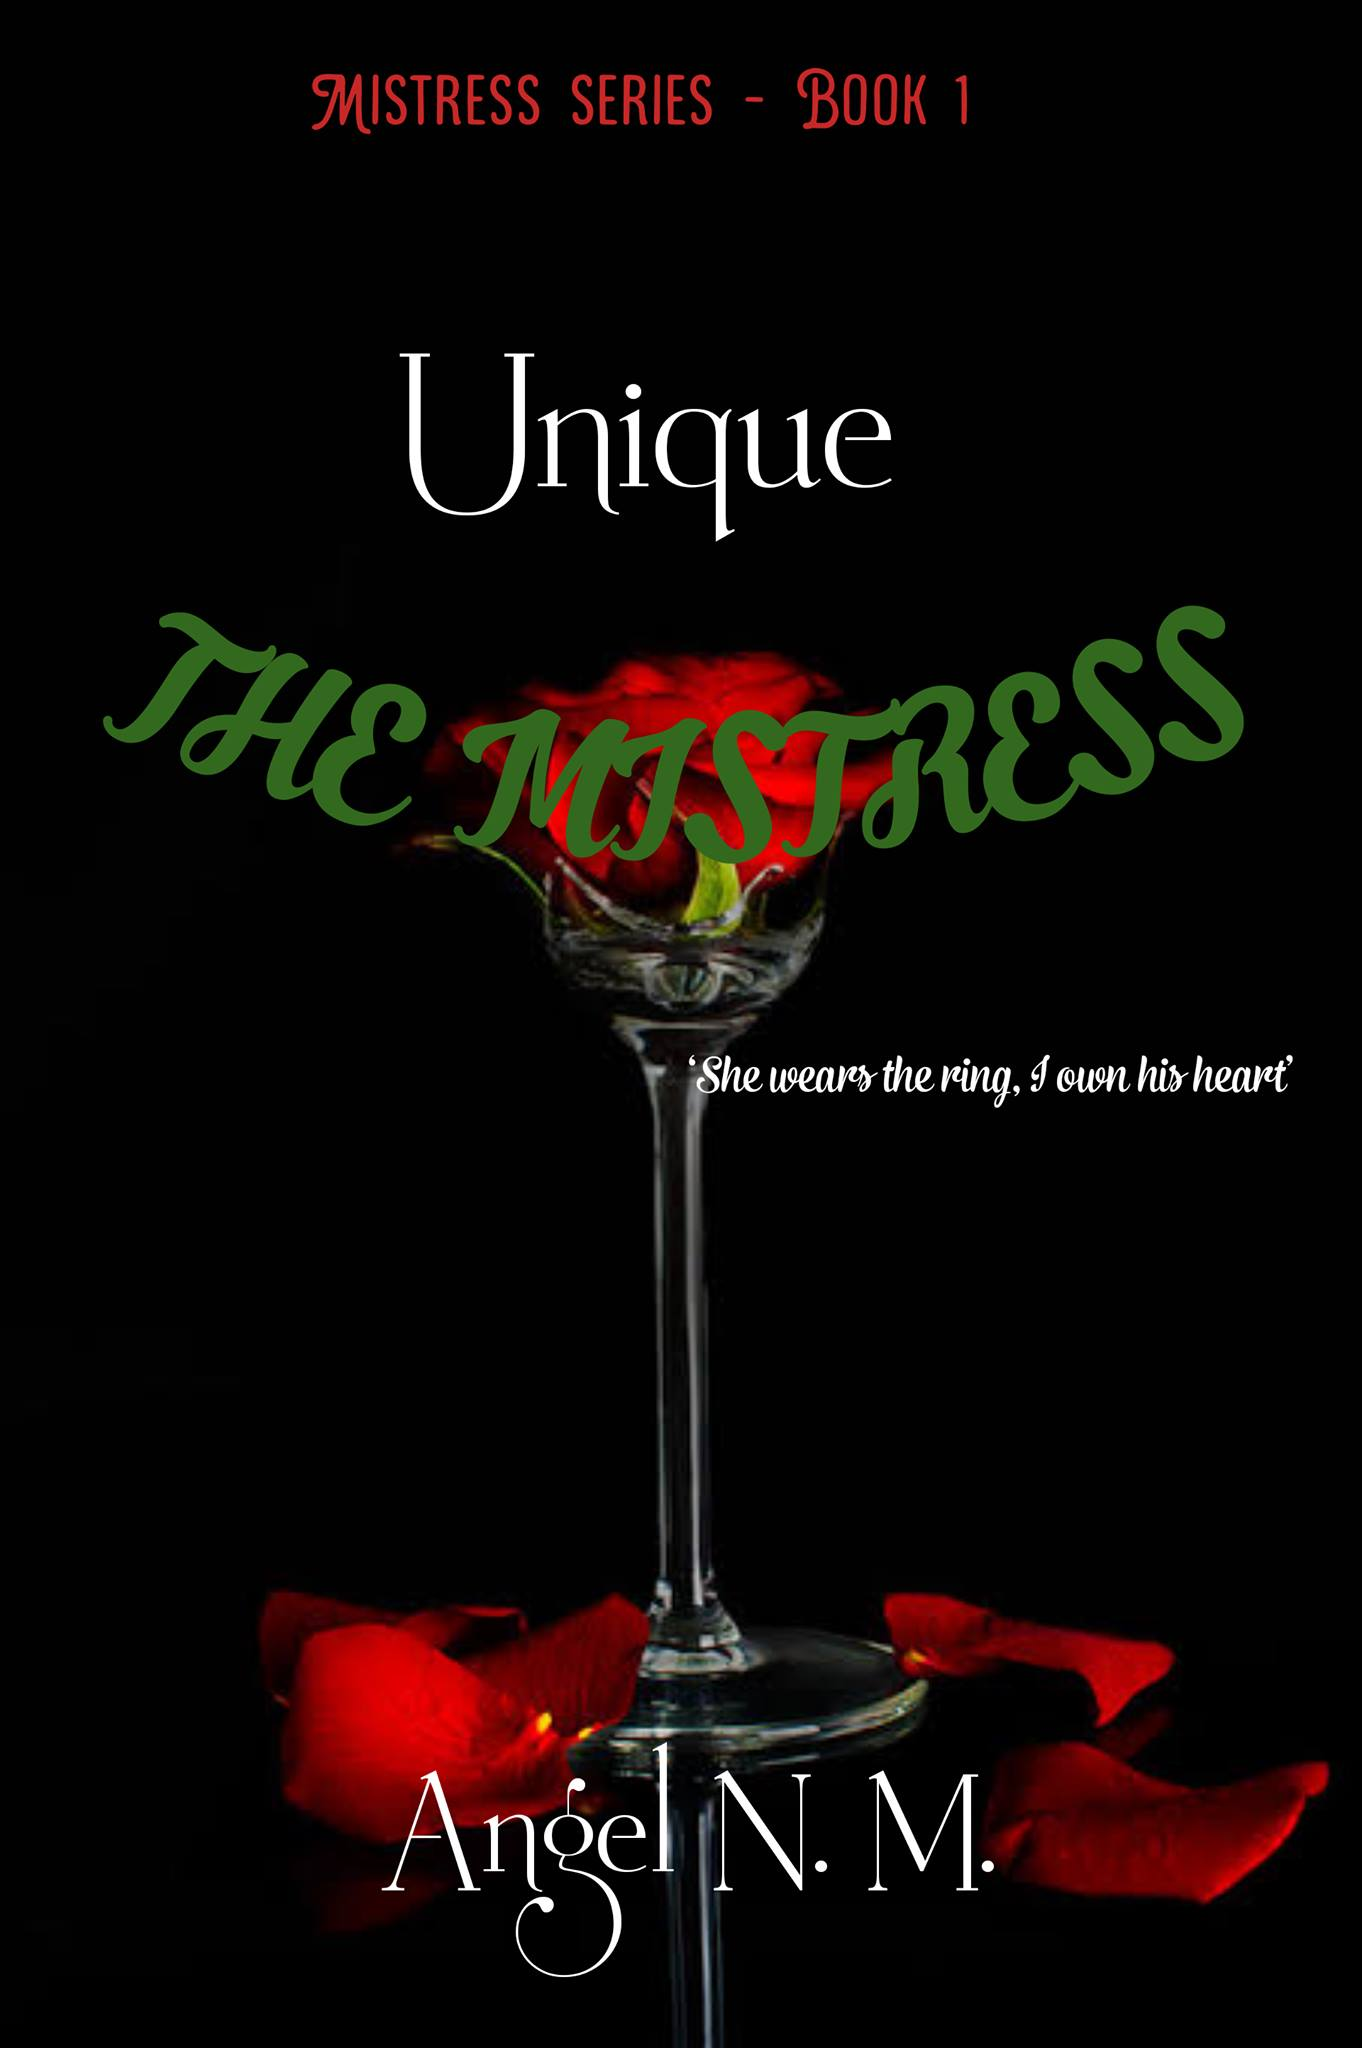 THE MISTRESS By Angle N. M